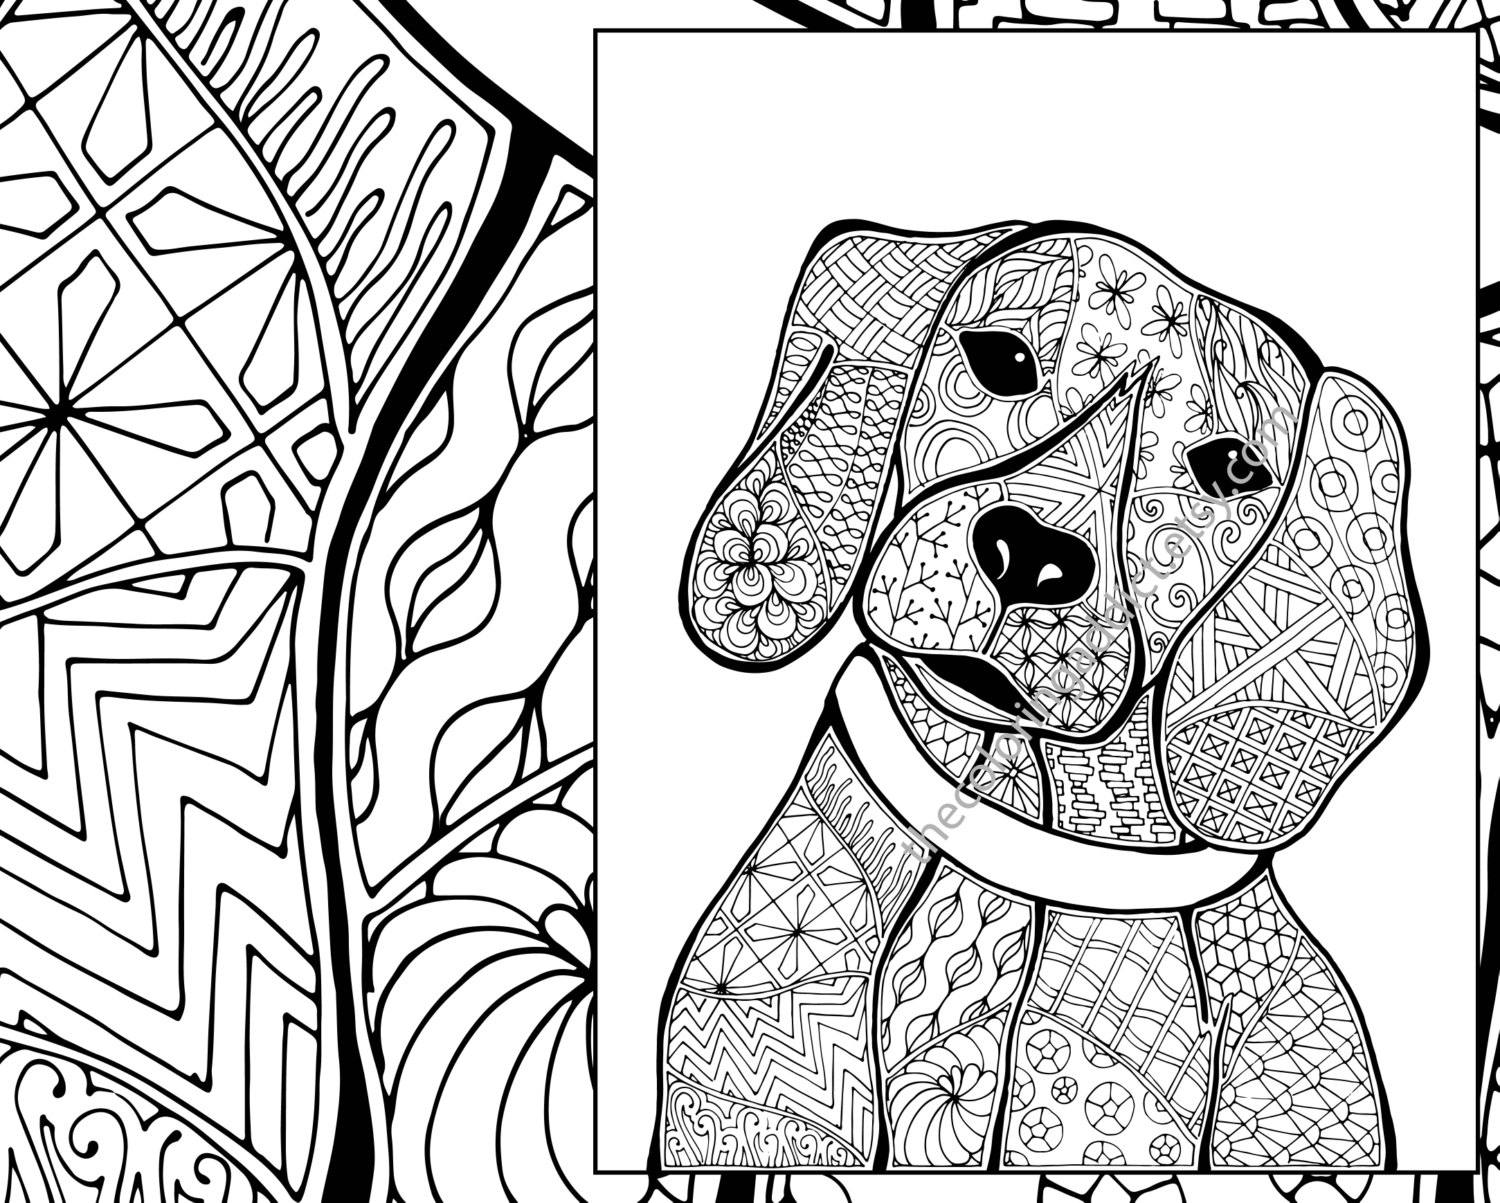 Cozy Fun Hissy Rolly Bingo Arf Puppy Dog Pals Coloring Page